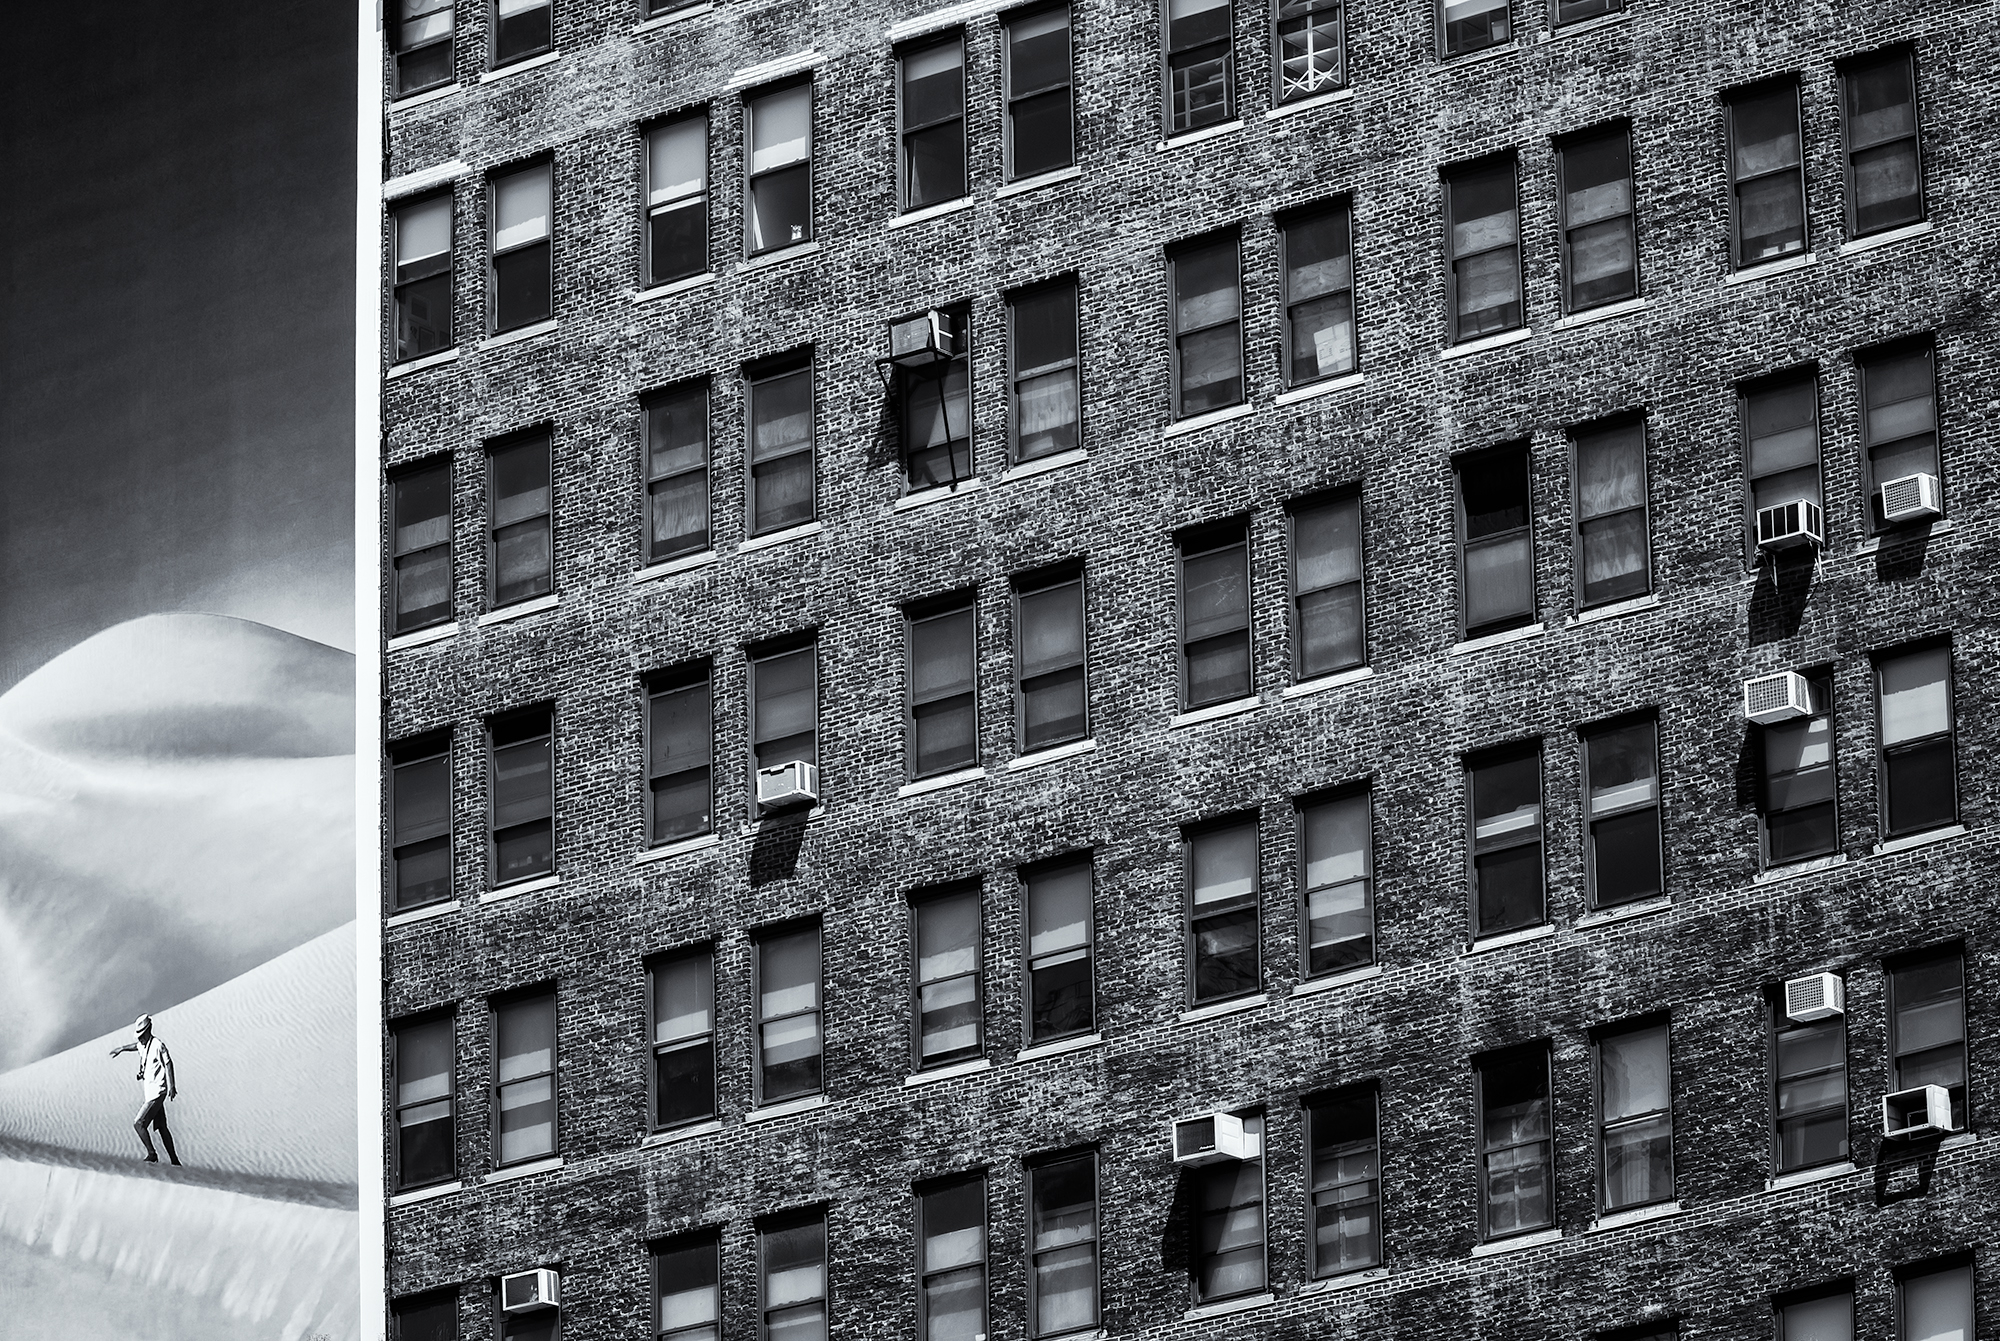 Building, #37 (The Great Escape). New York City, NY, 2015